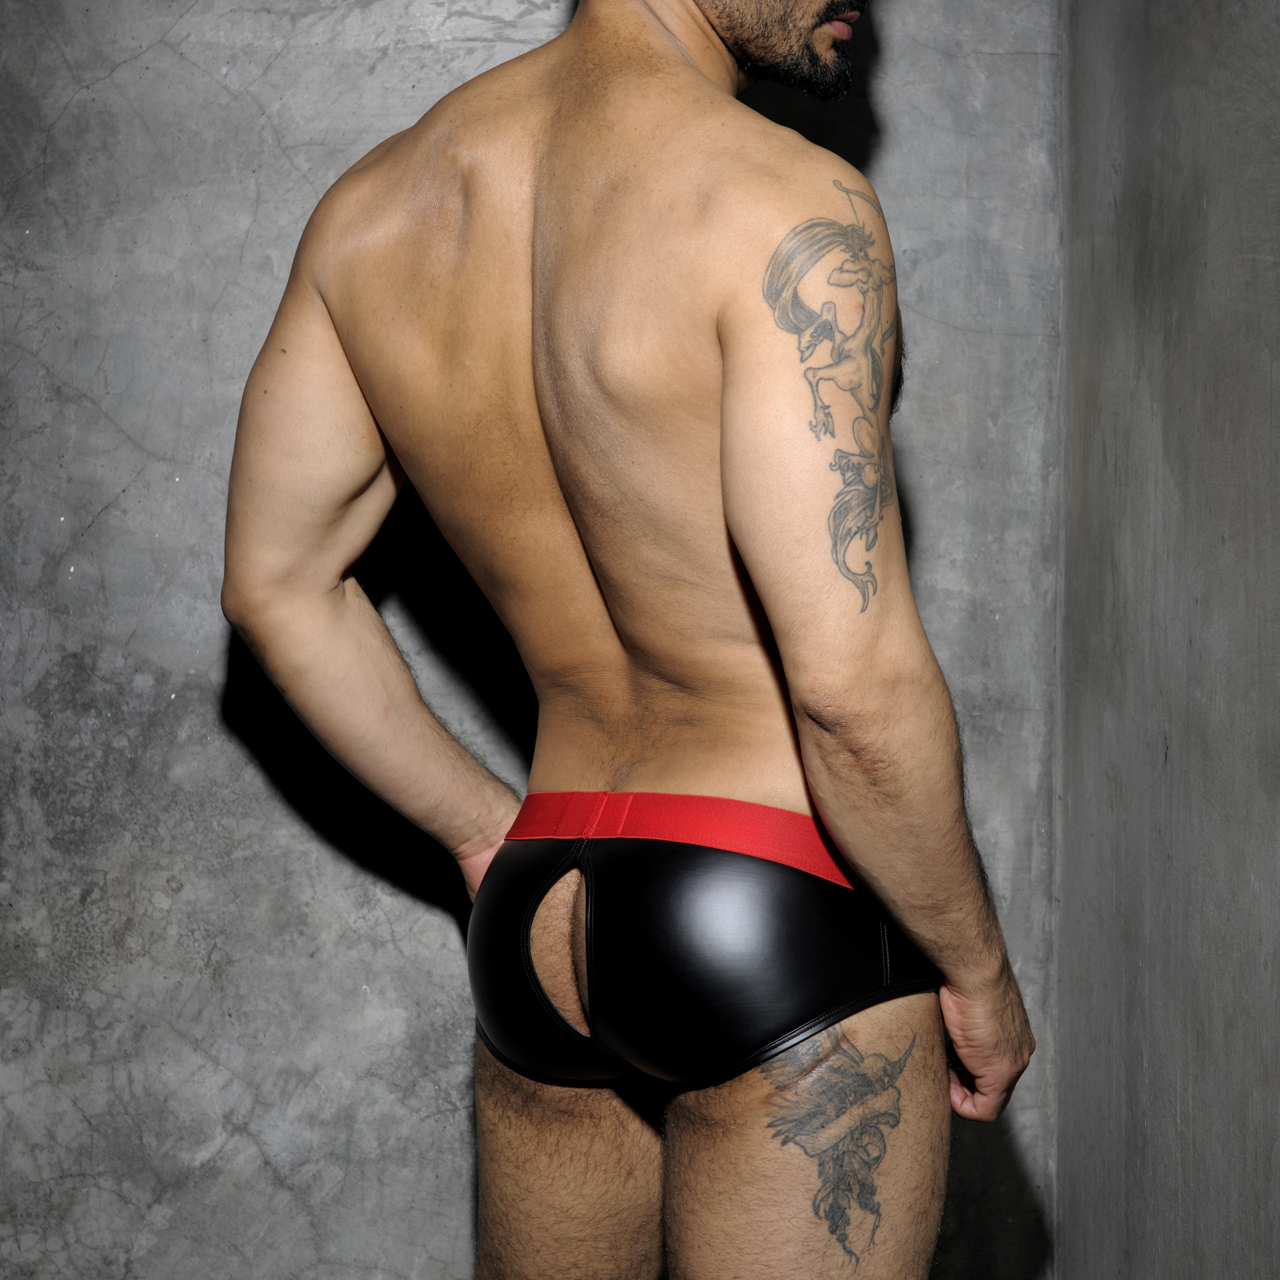 ADDICTED FETISH RUB BRIEF BACK OPEN - Red